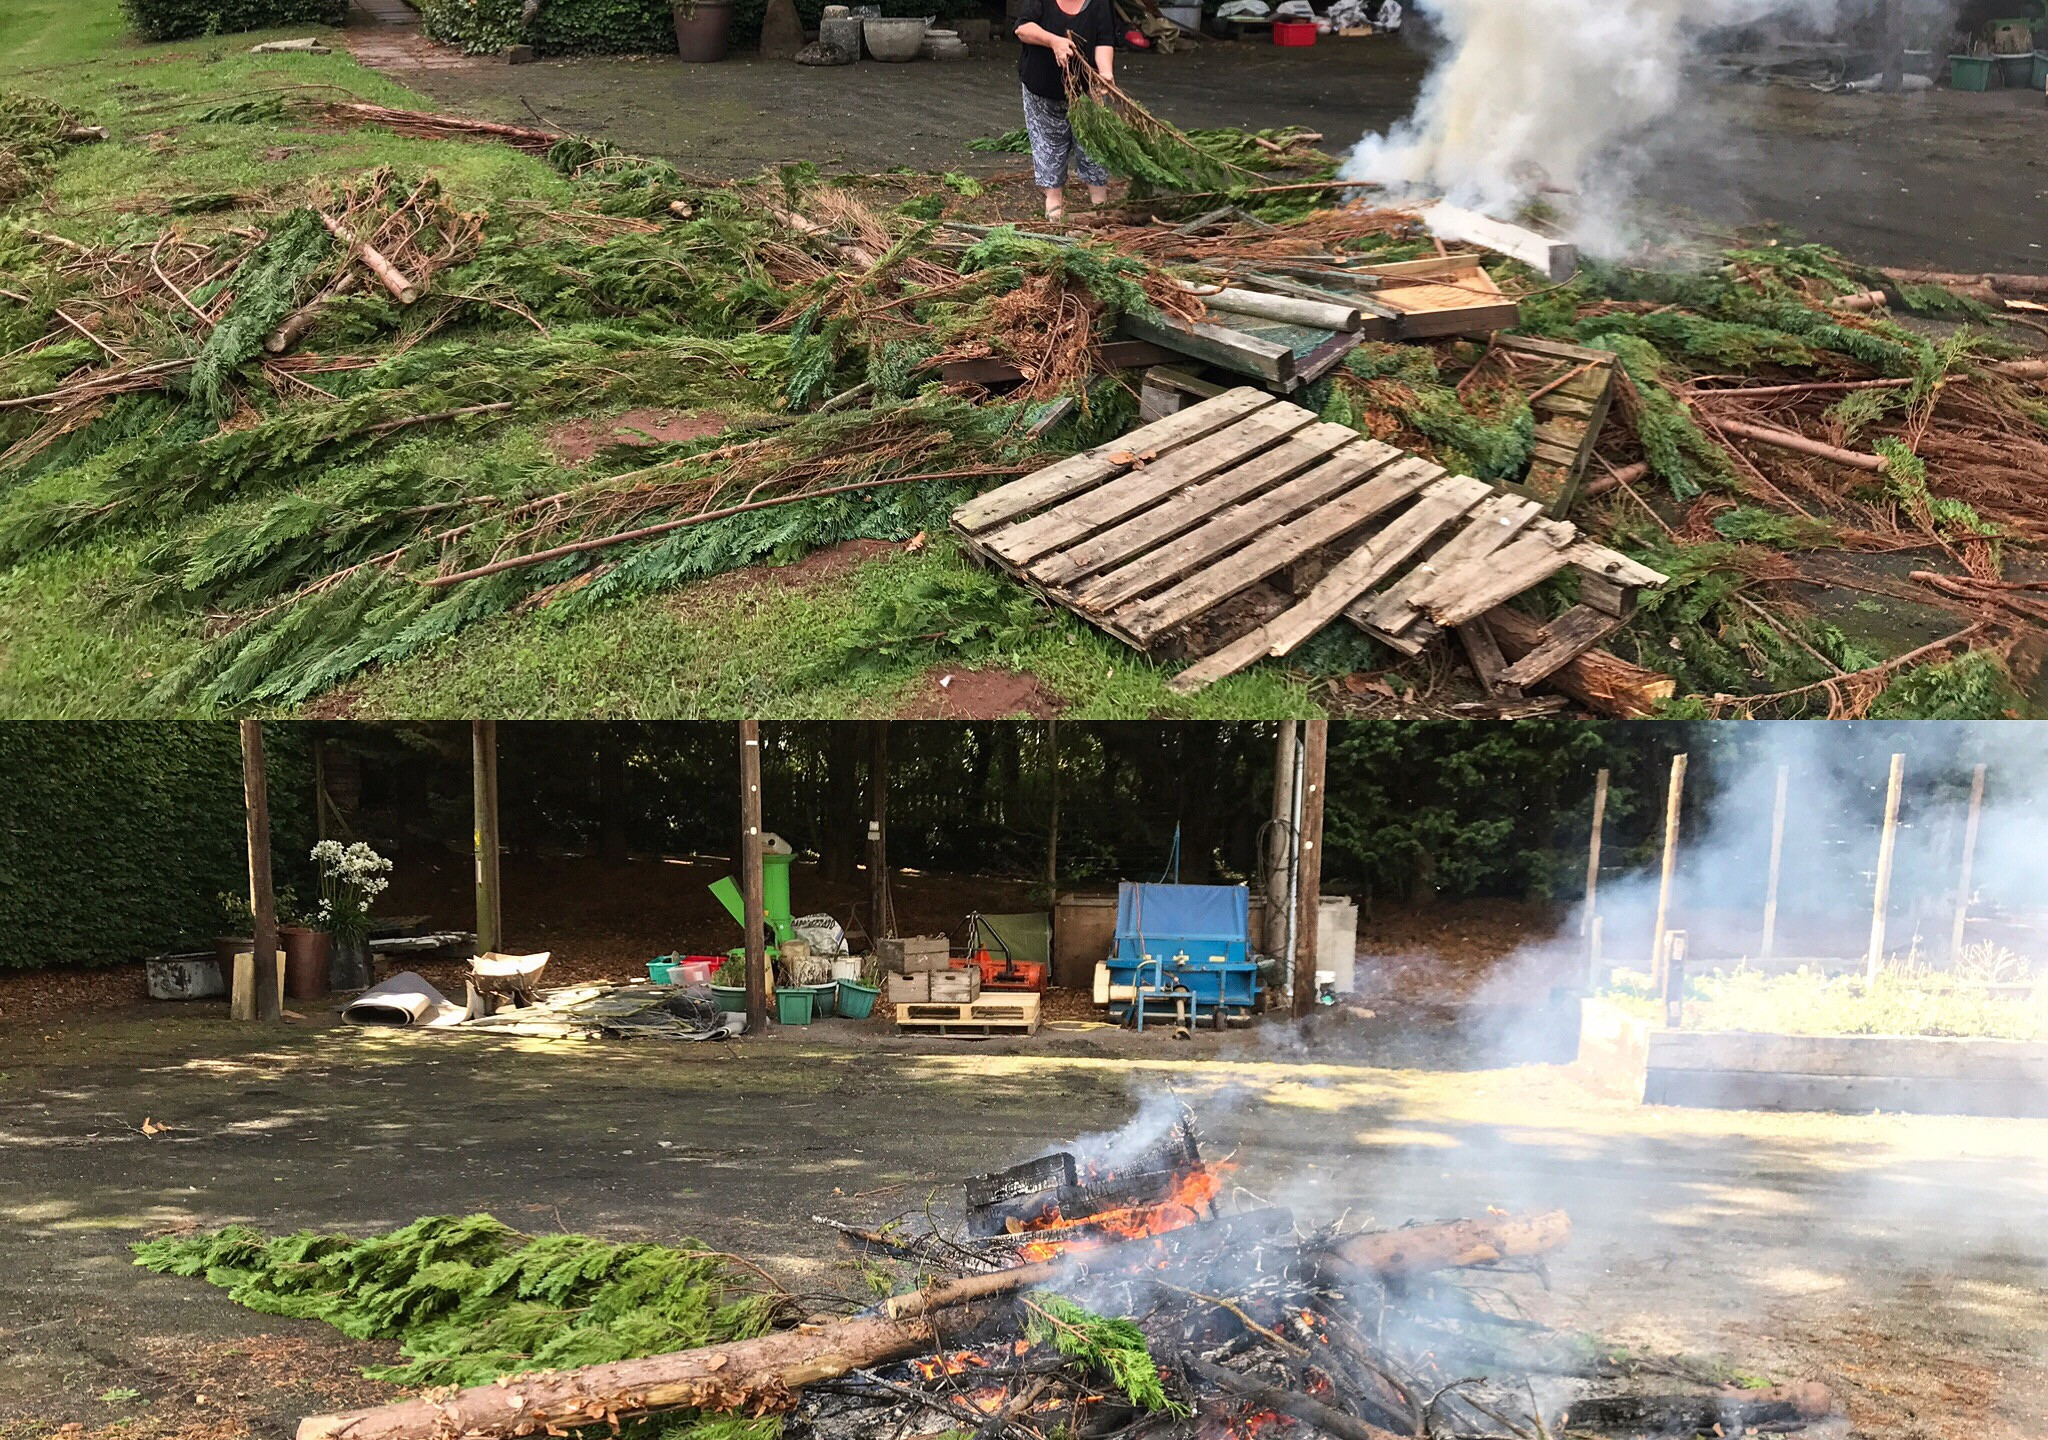 Clearing the debris